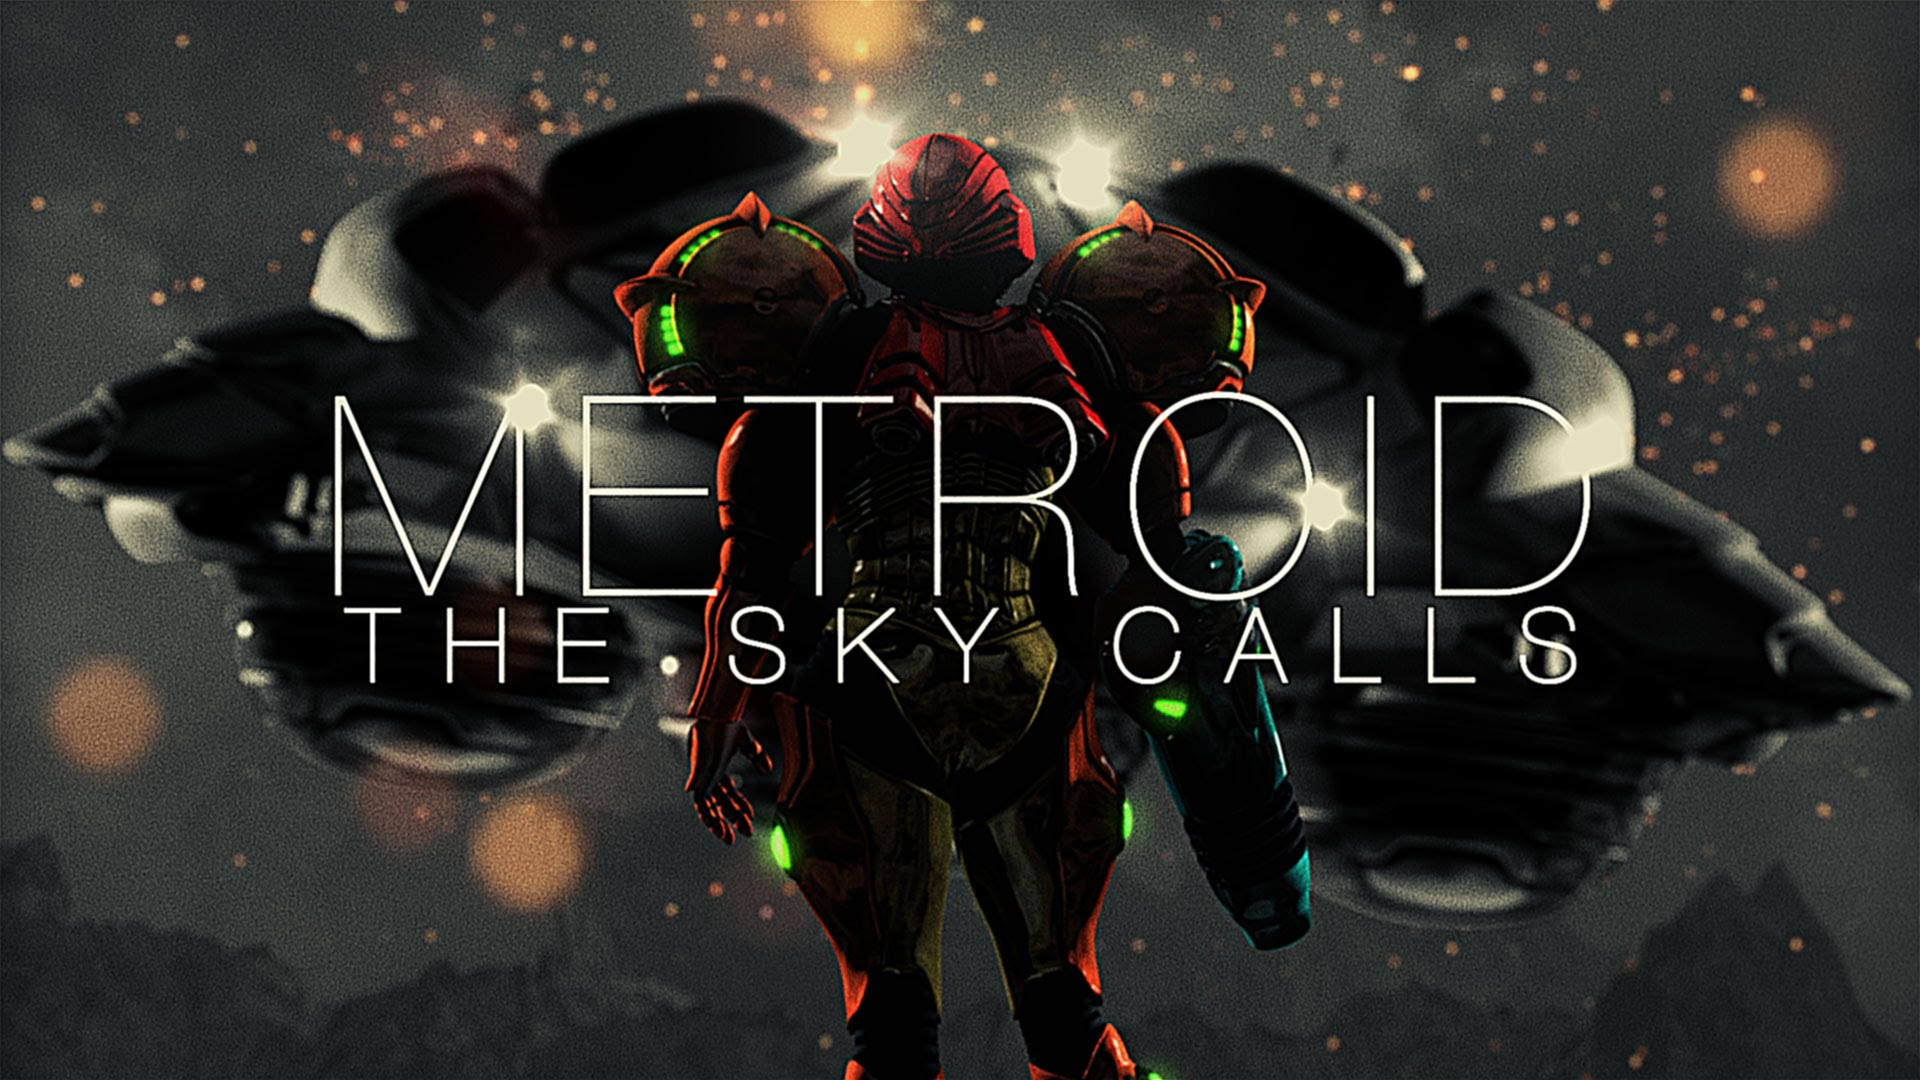 Grandios: METROID-Fanfilm THE SKY CALLS